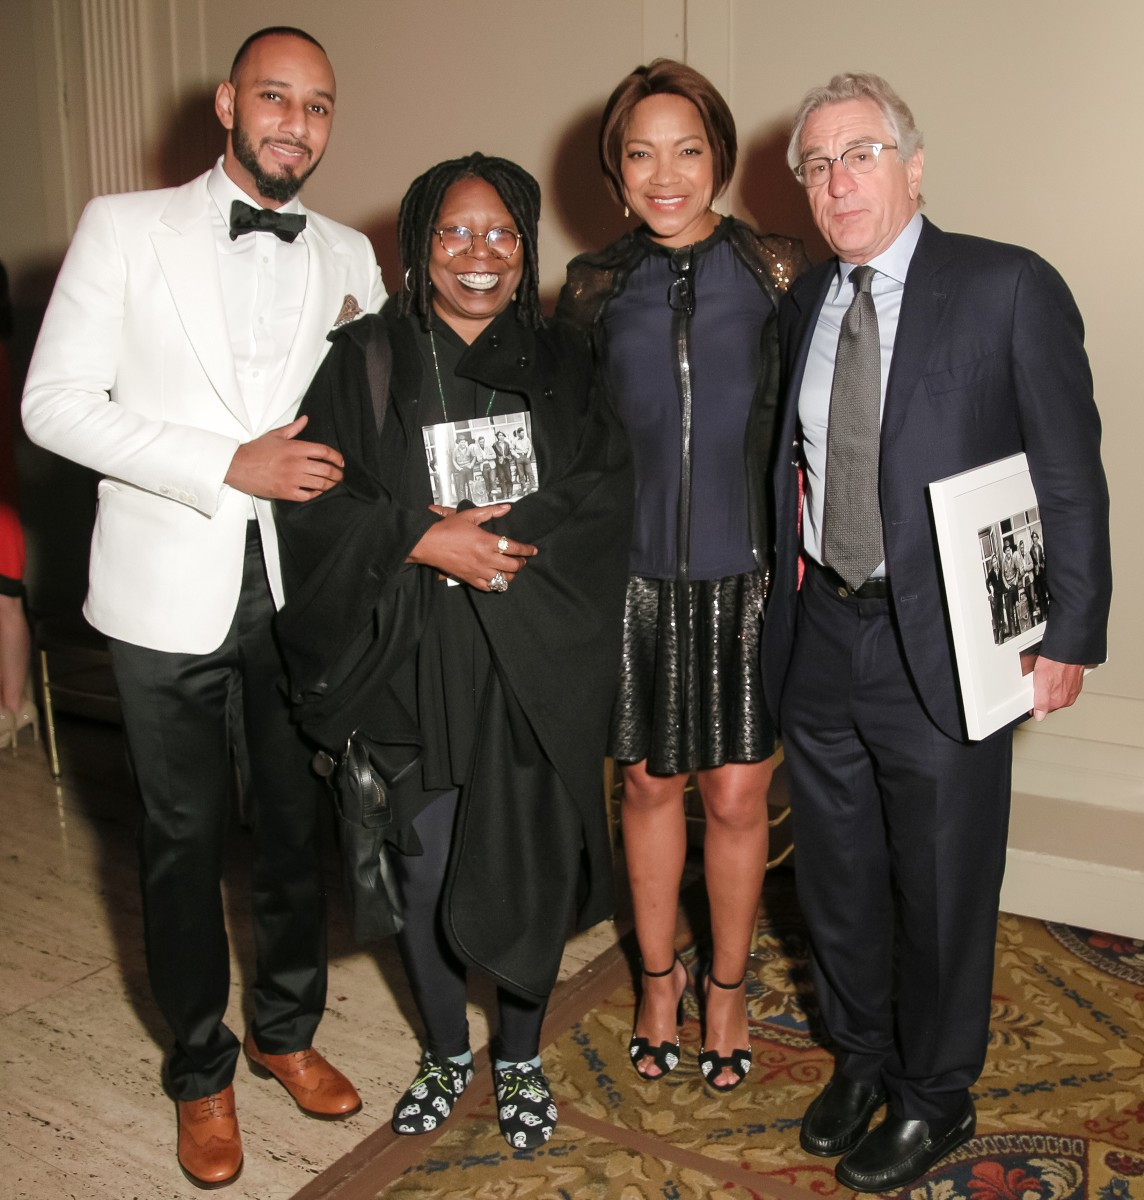 The GORDON PARKS Foundation Awards Dinner and Auction CELEBRATING THE ARTS